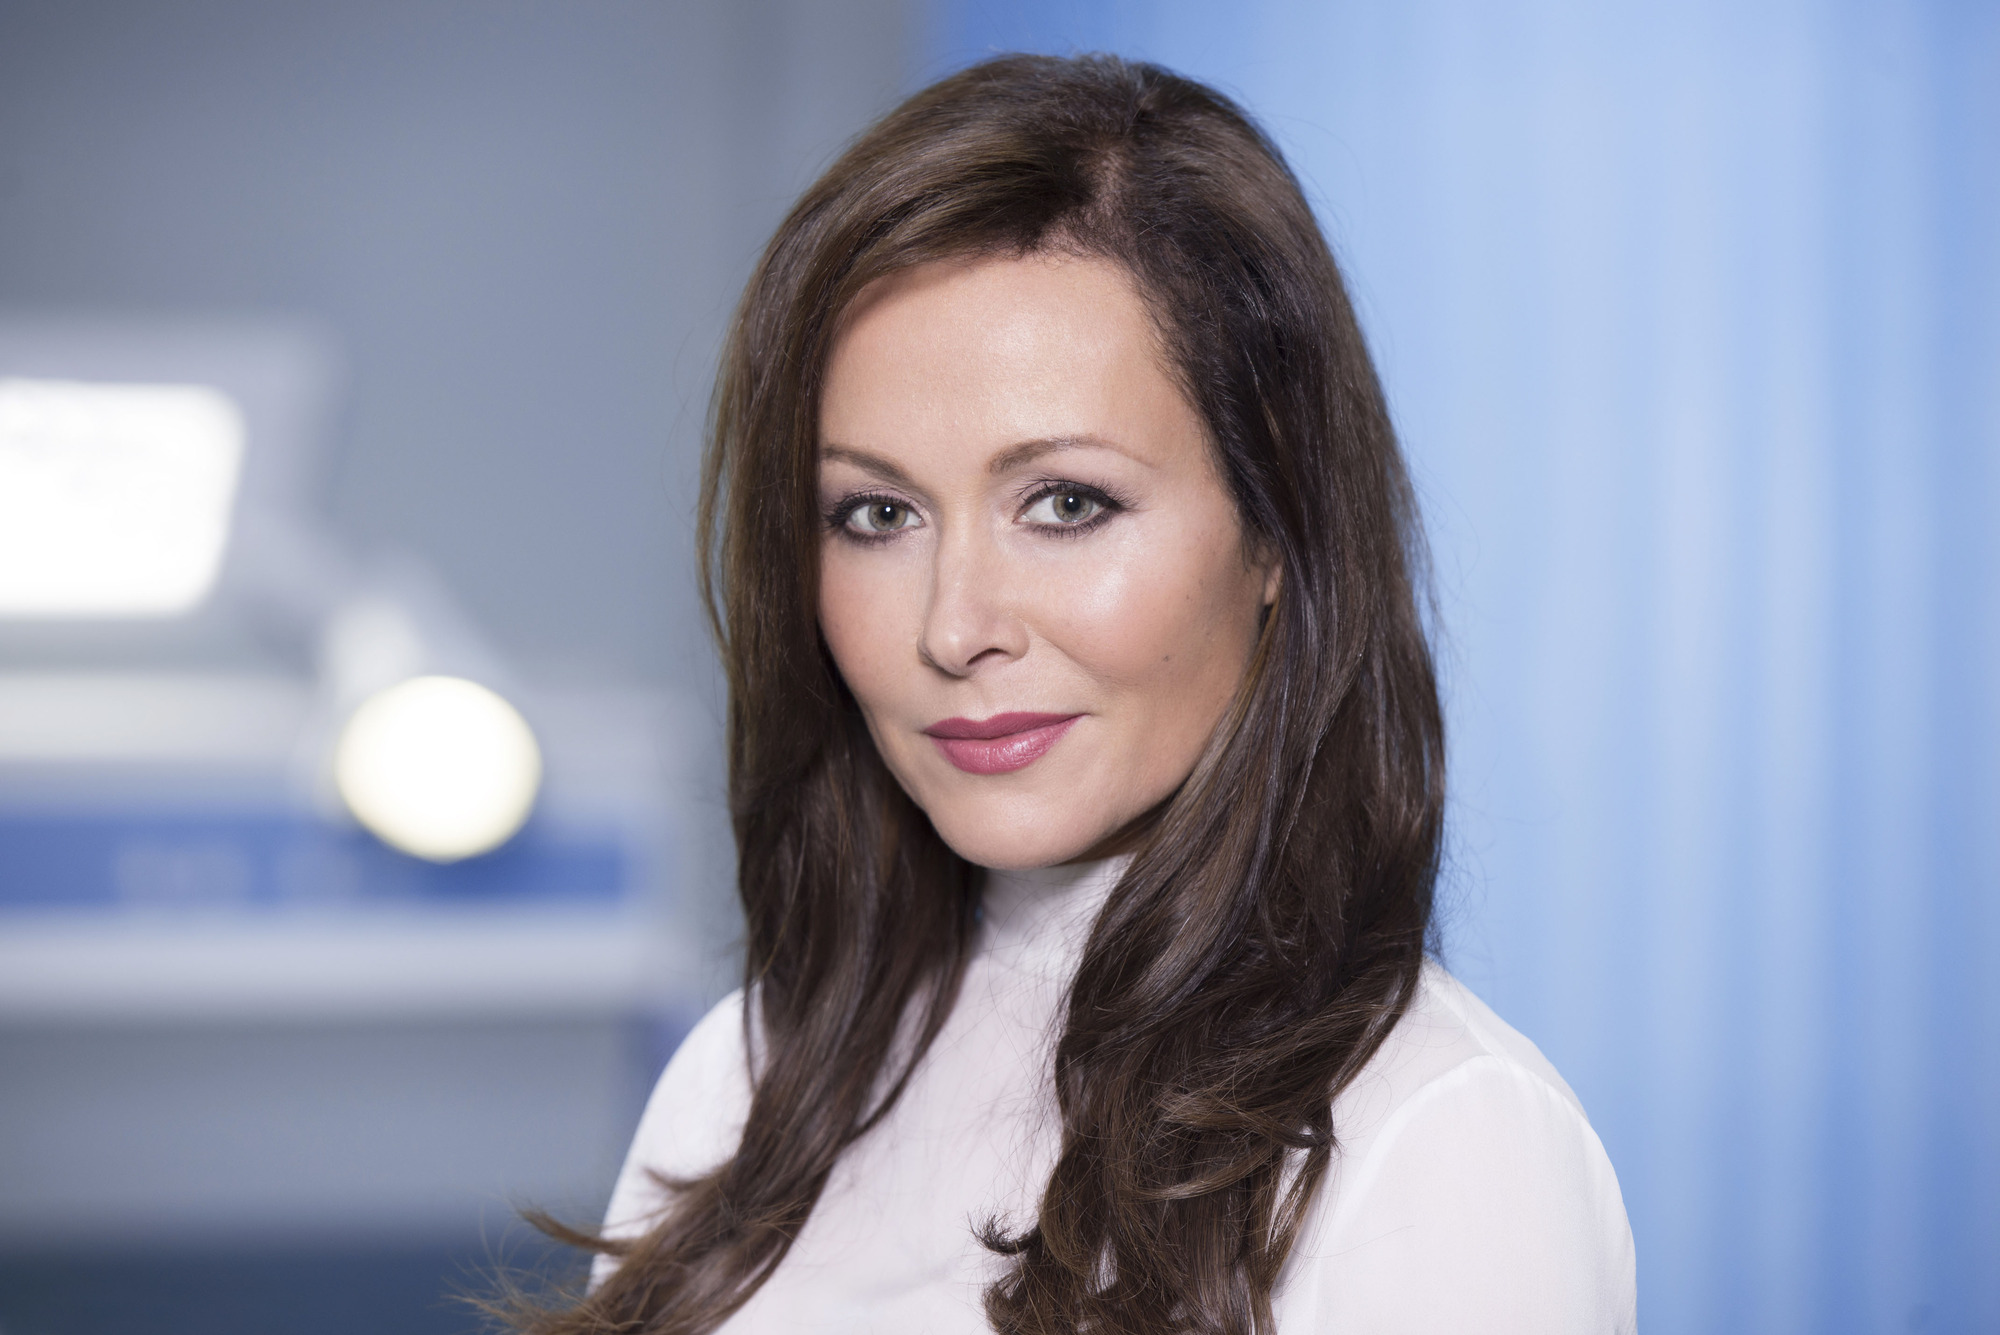 amanda mealing leaving casualty